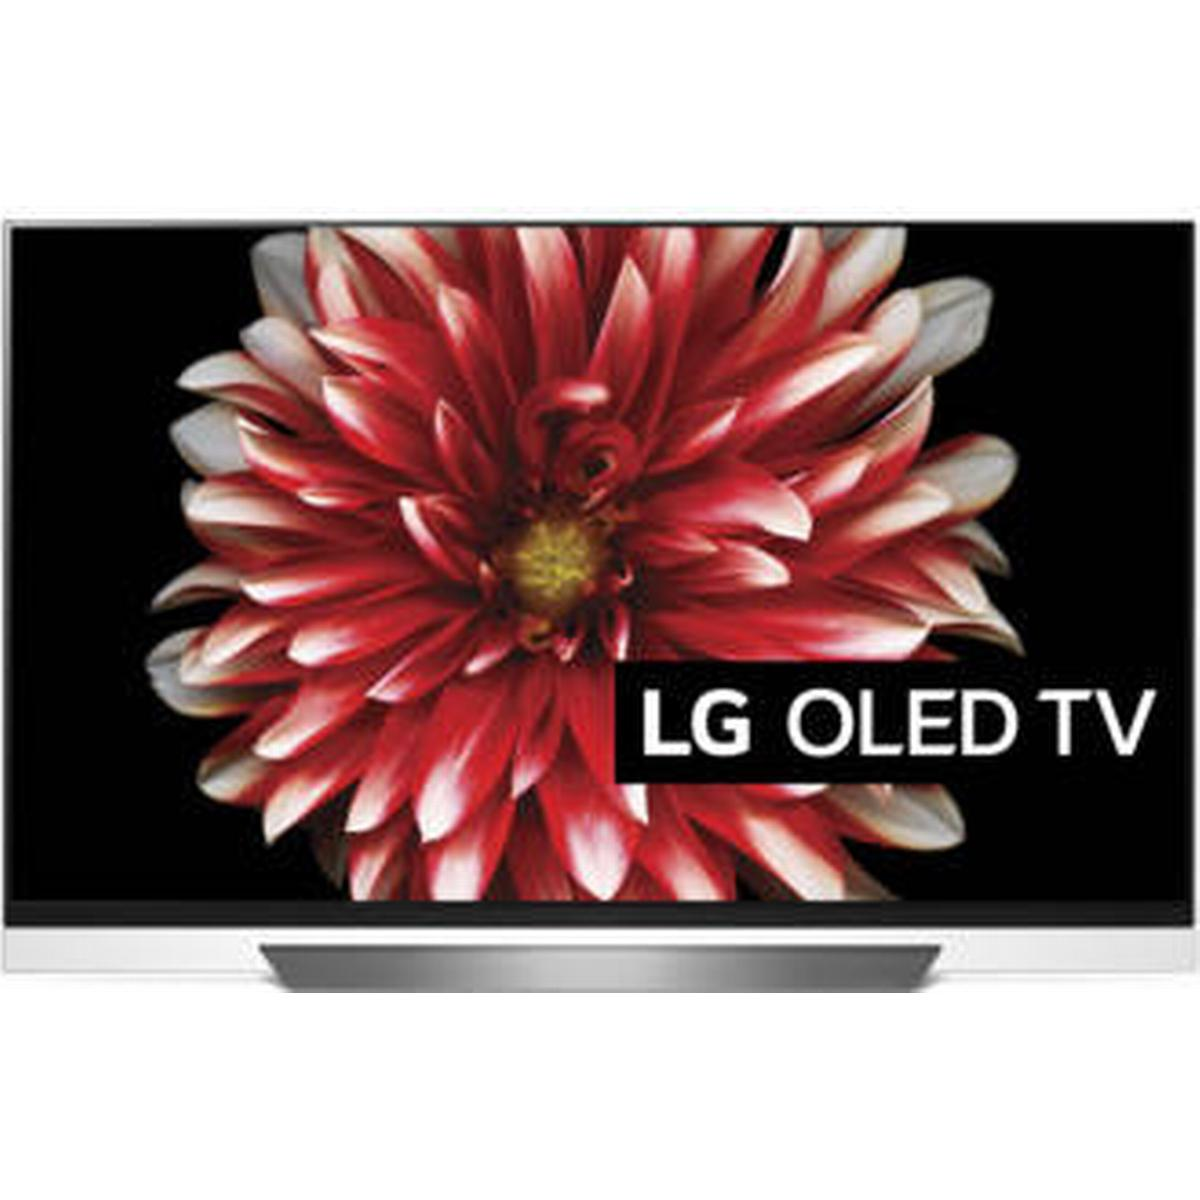 TV prices - Compare flat screen TVs deals when buying a television